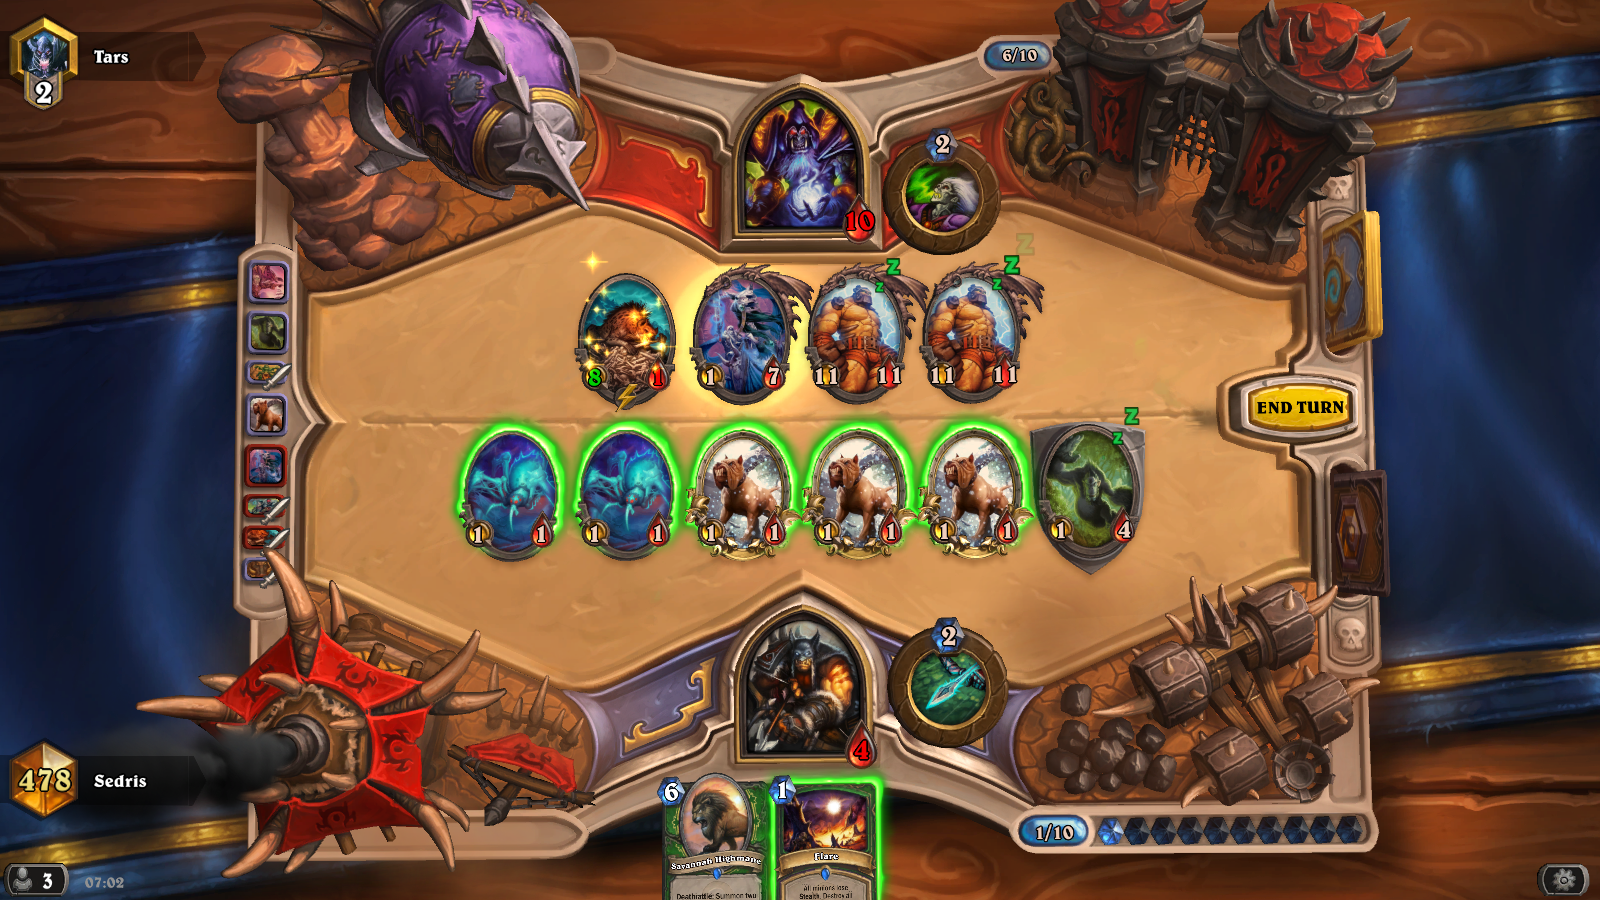 hearthstone_screenshocxk91.png